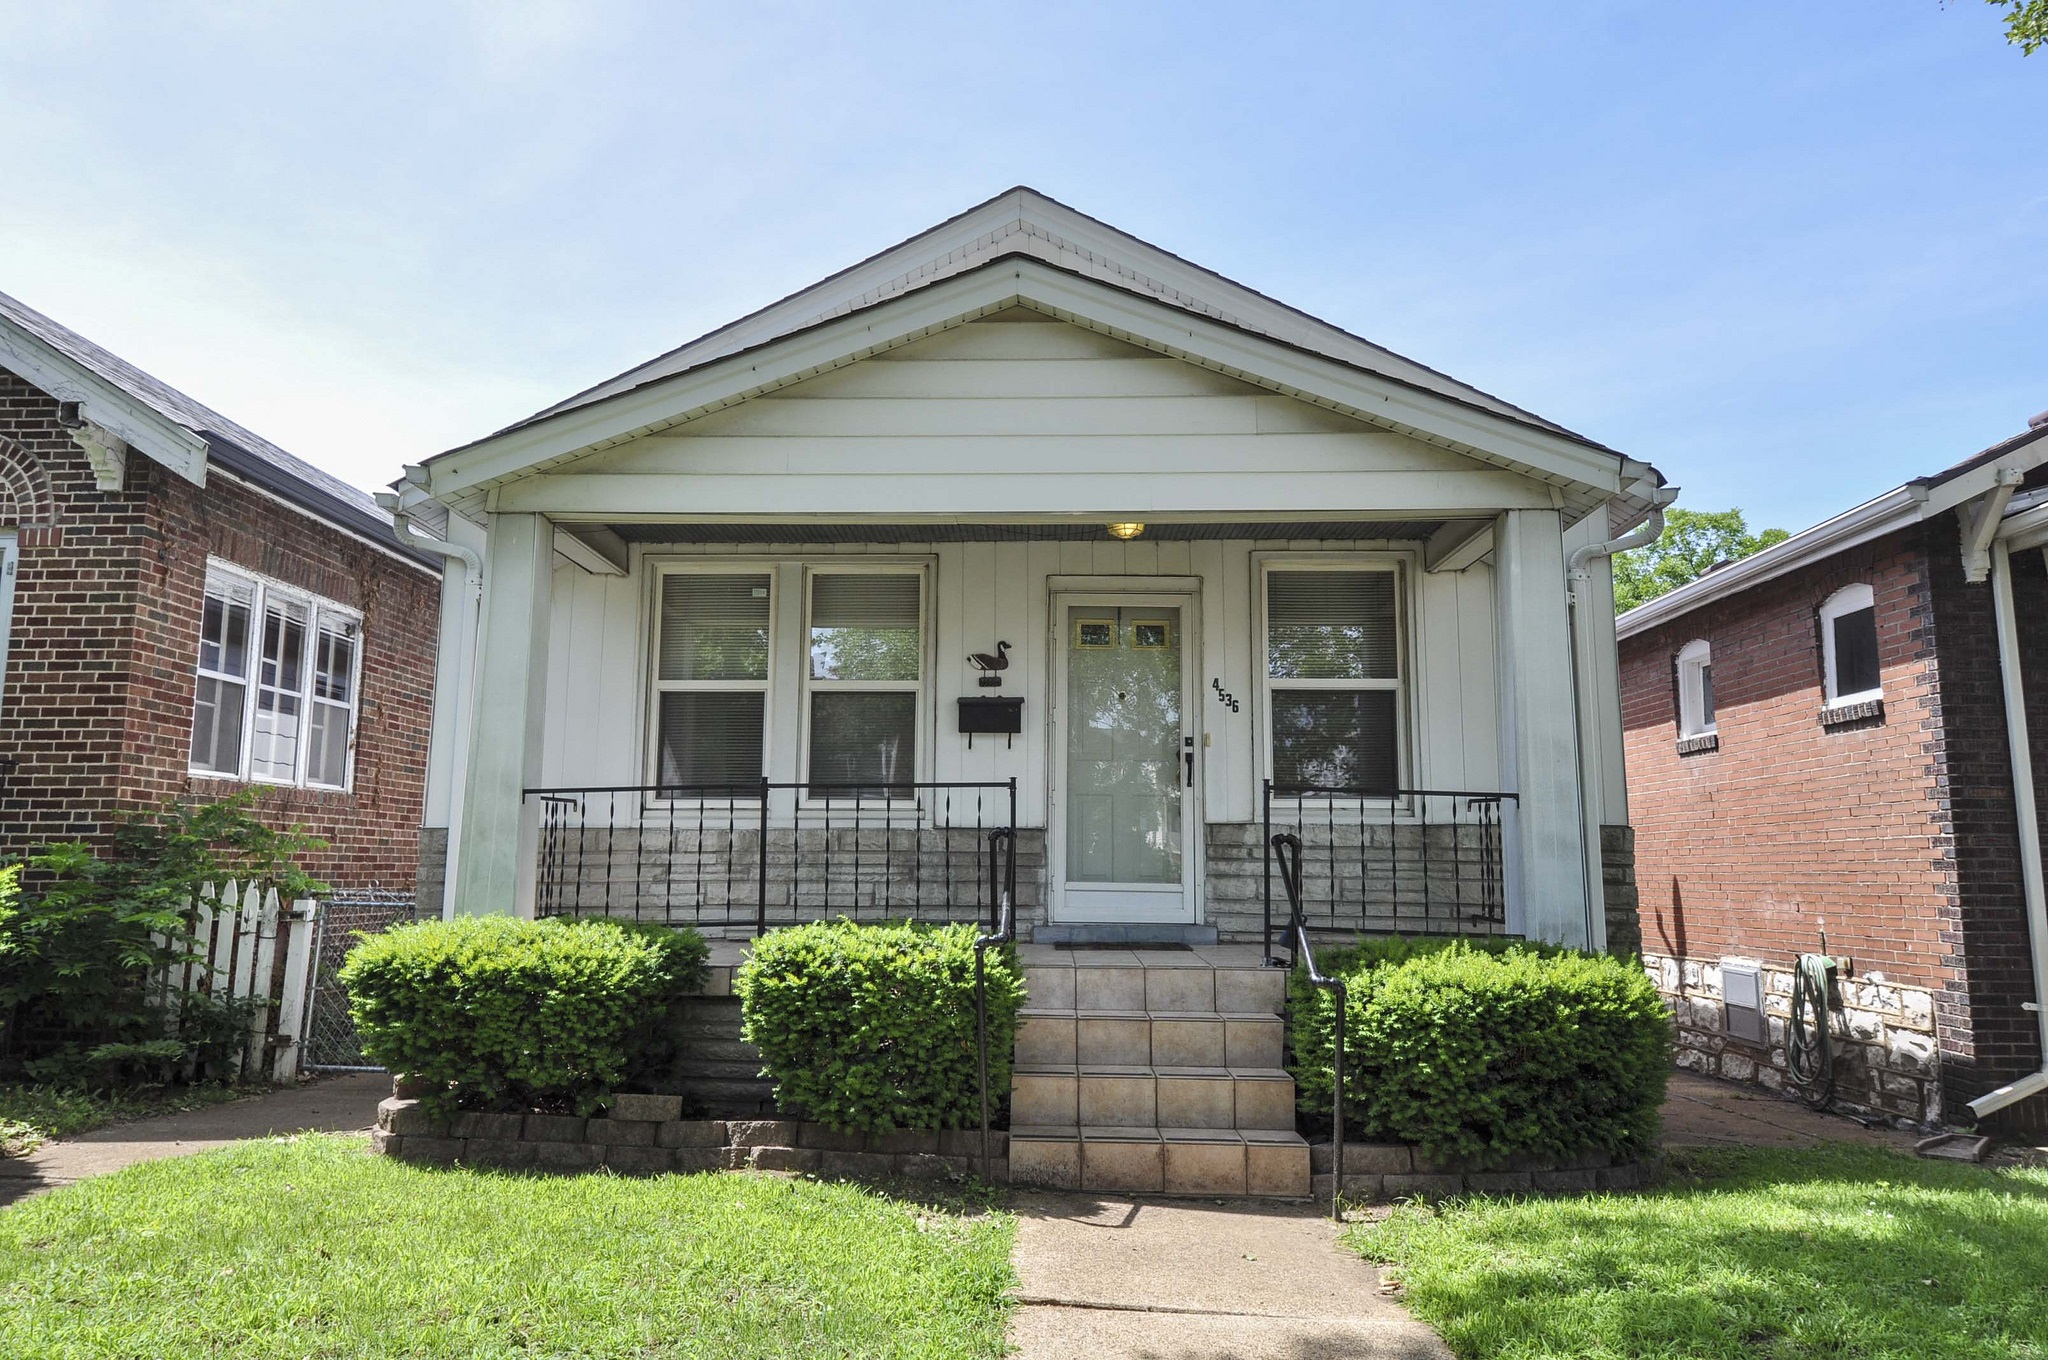 4536 Eichelberger Ave St Louis MO 63116